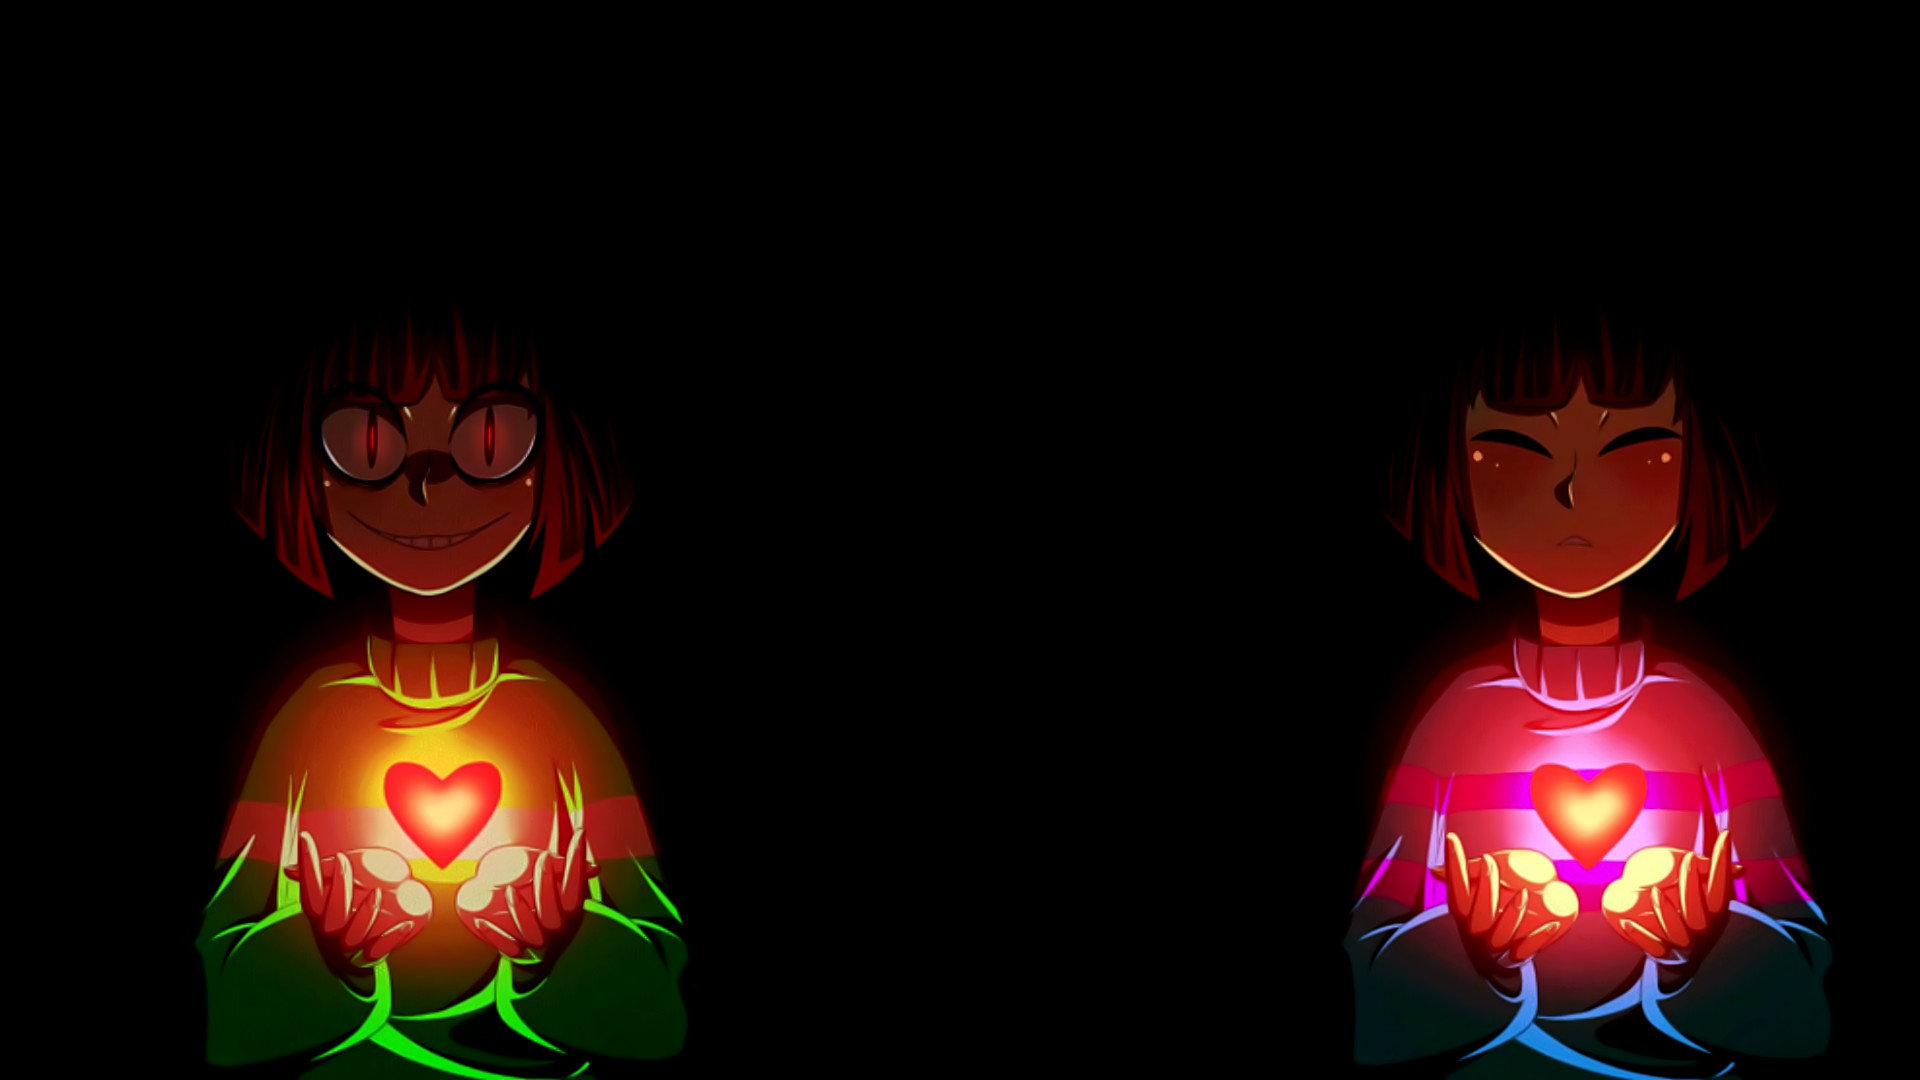 1920x1080 - Undertale Wallpaper 1920x1080 28